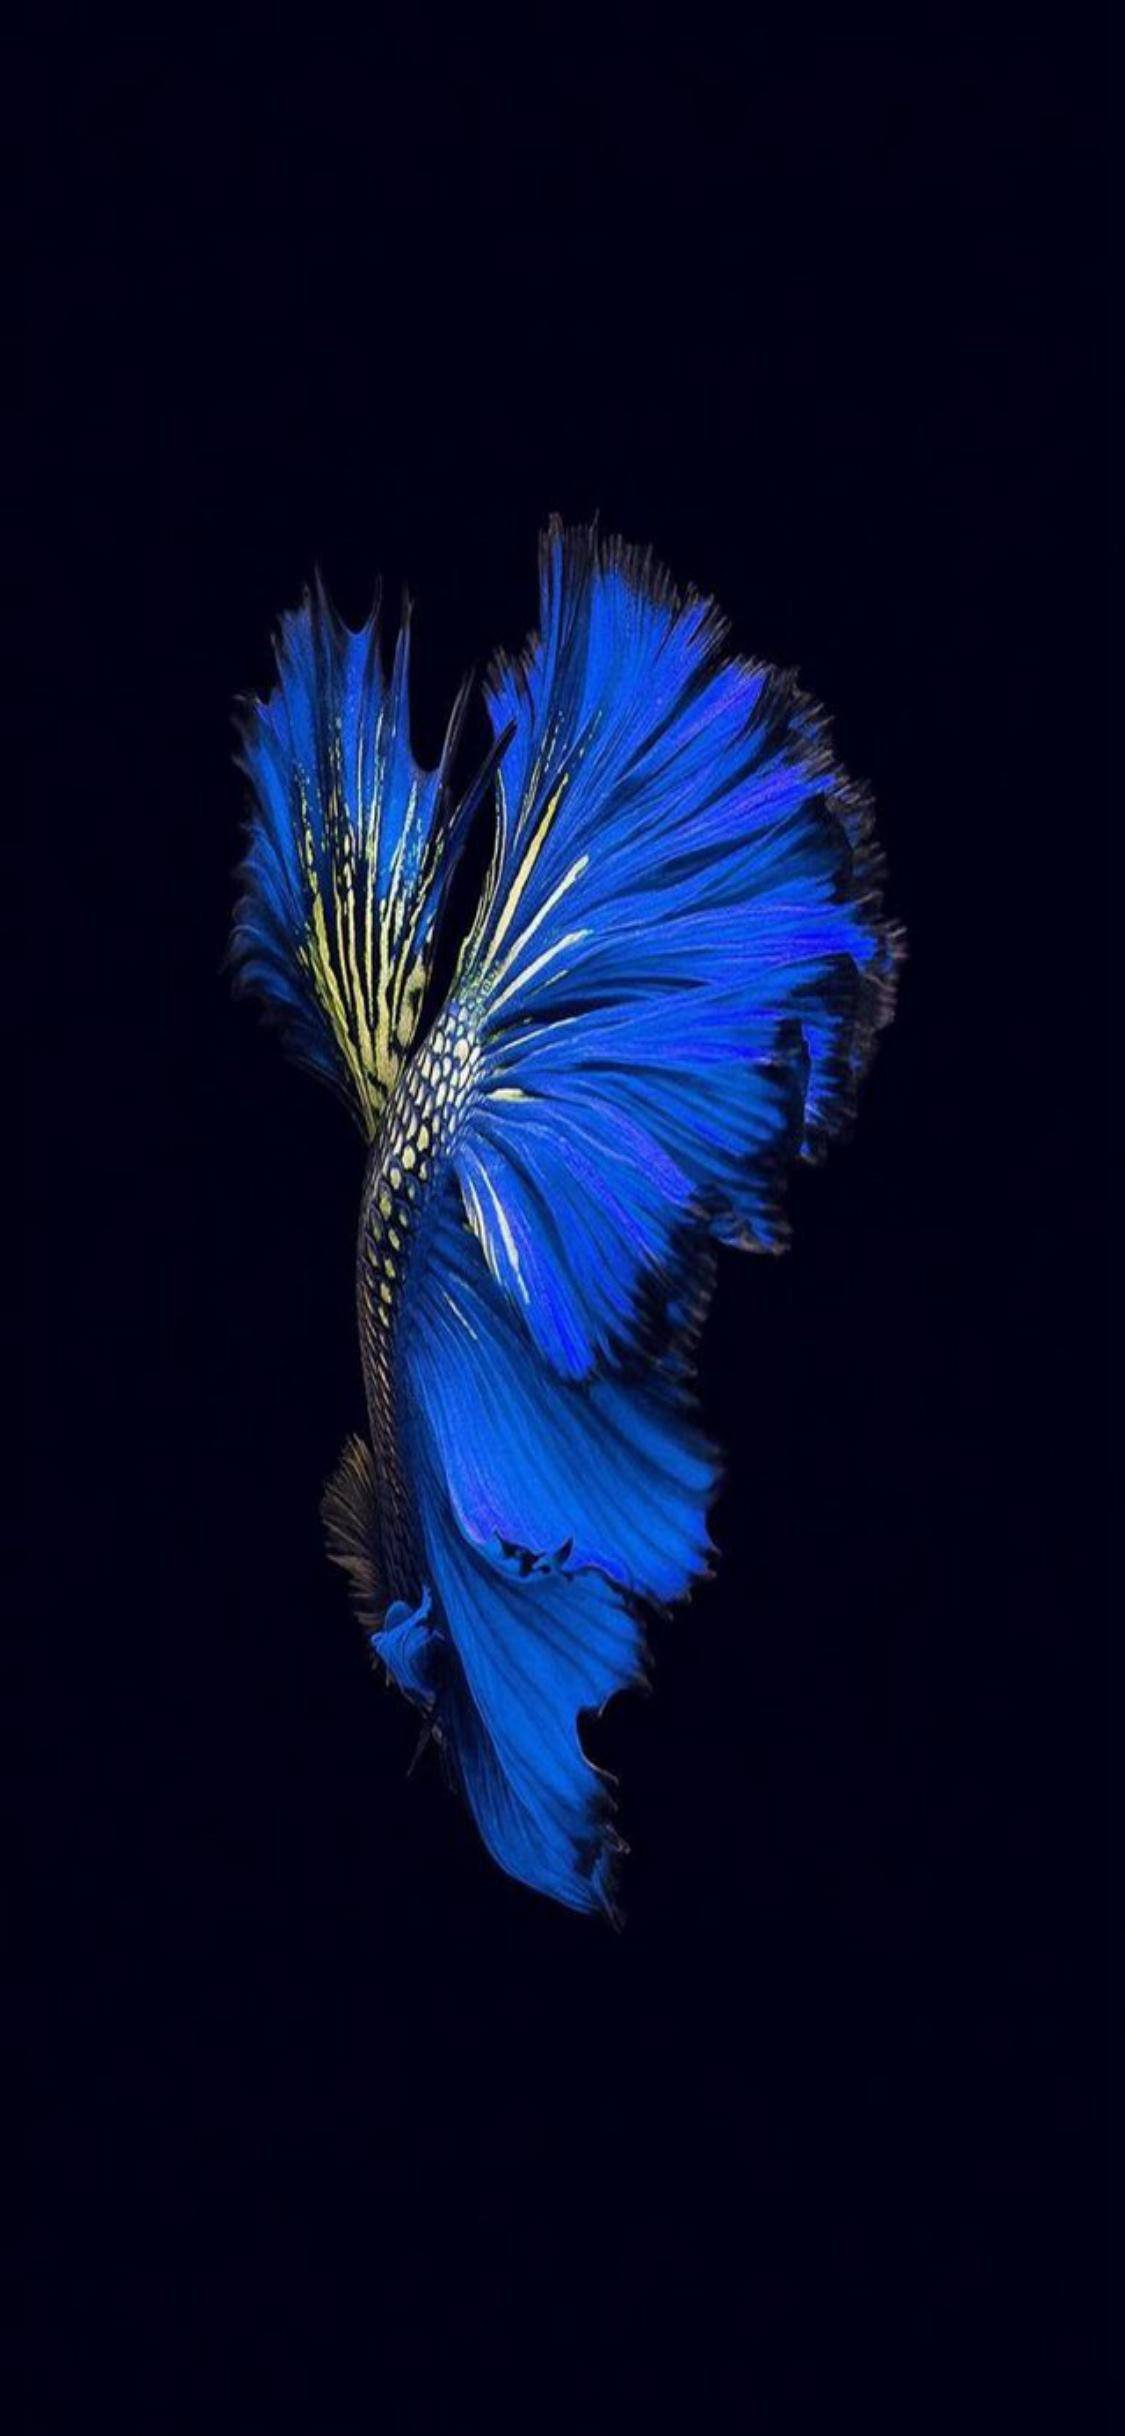 amoled iphone crowntail fish wallpapers beta wallpaperaccess